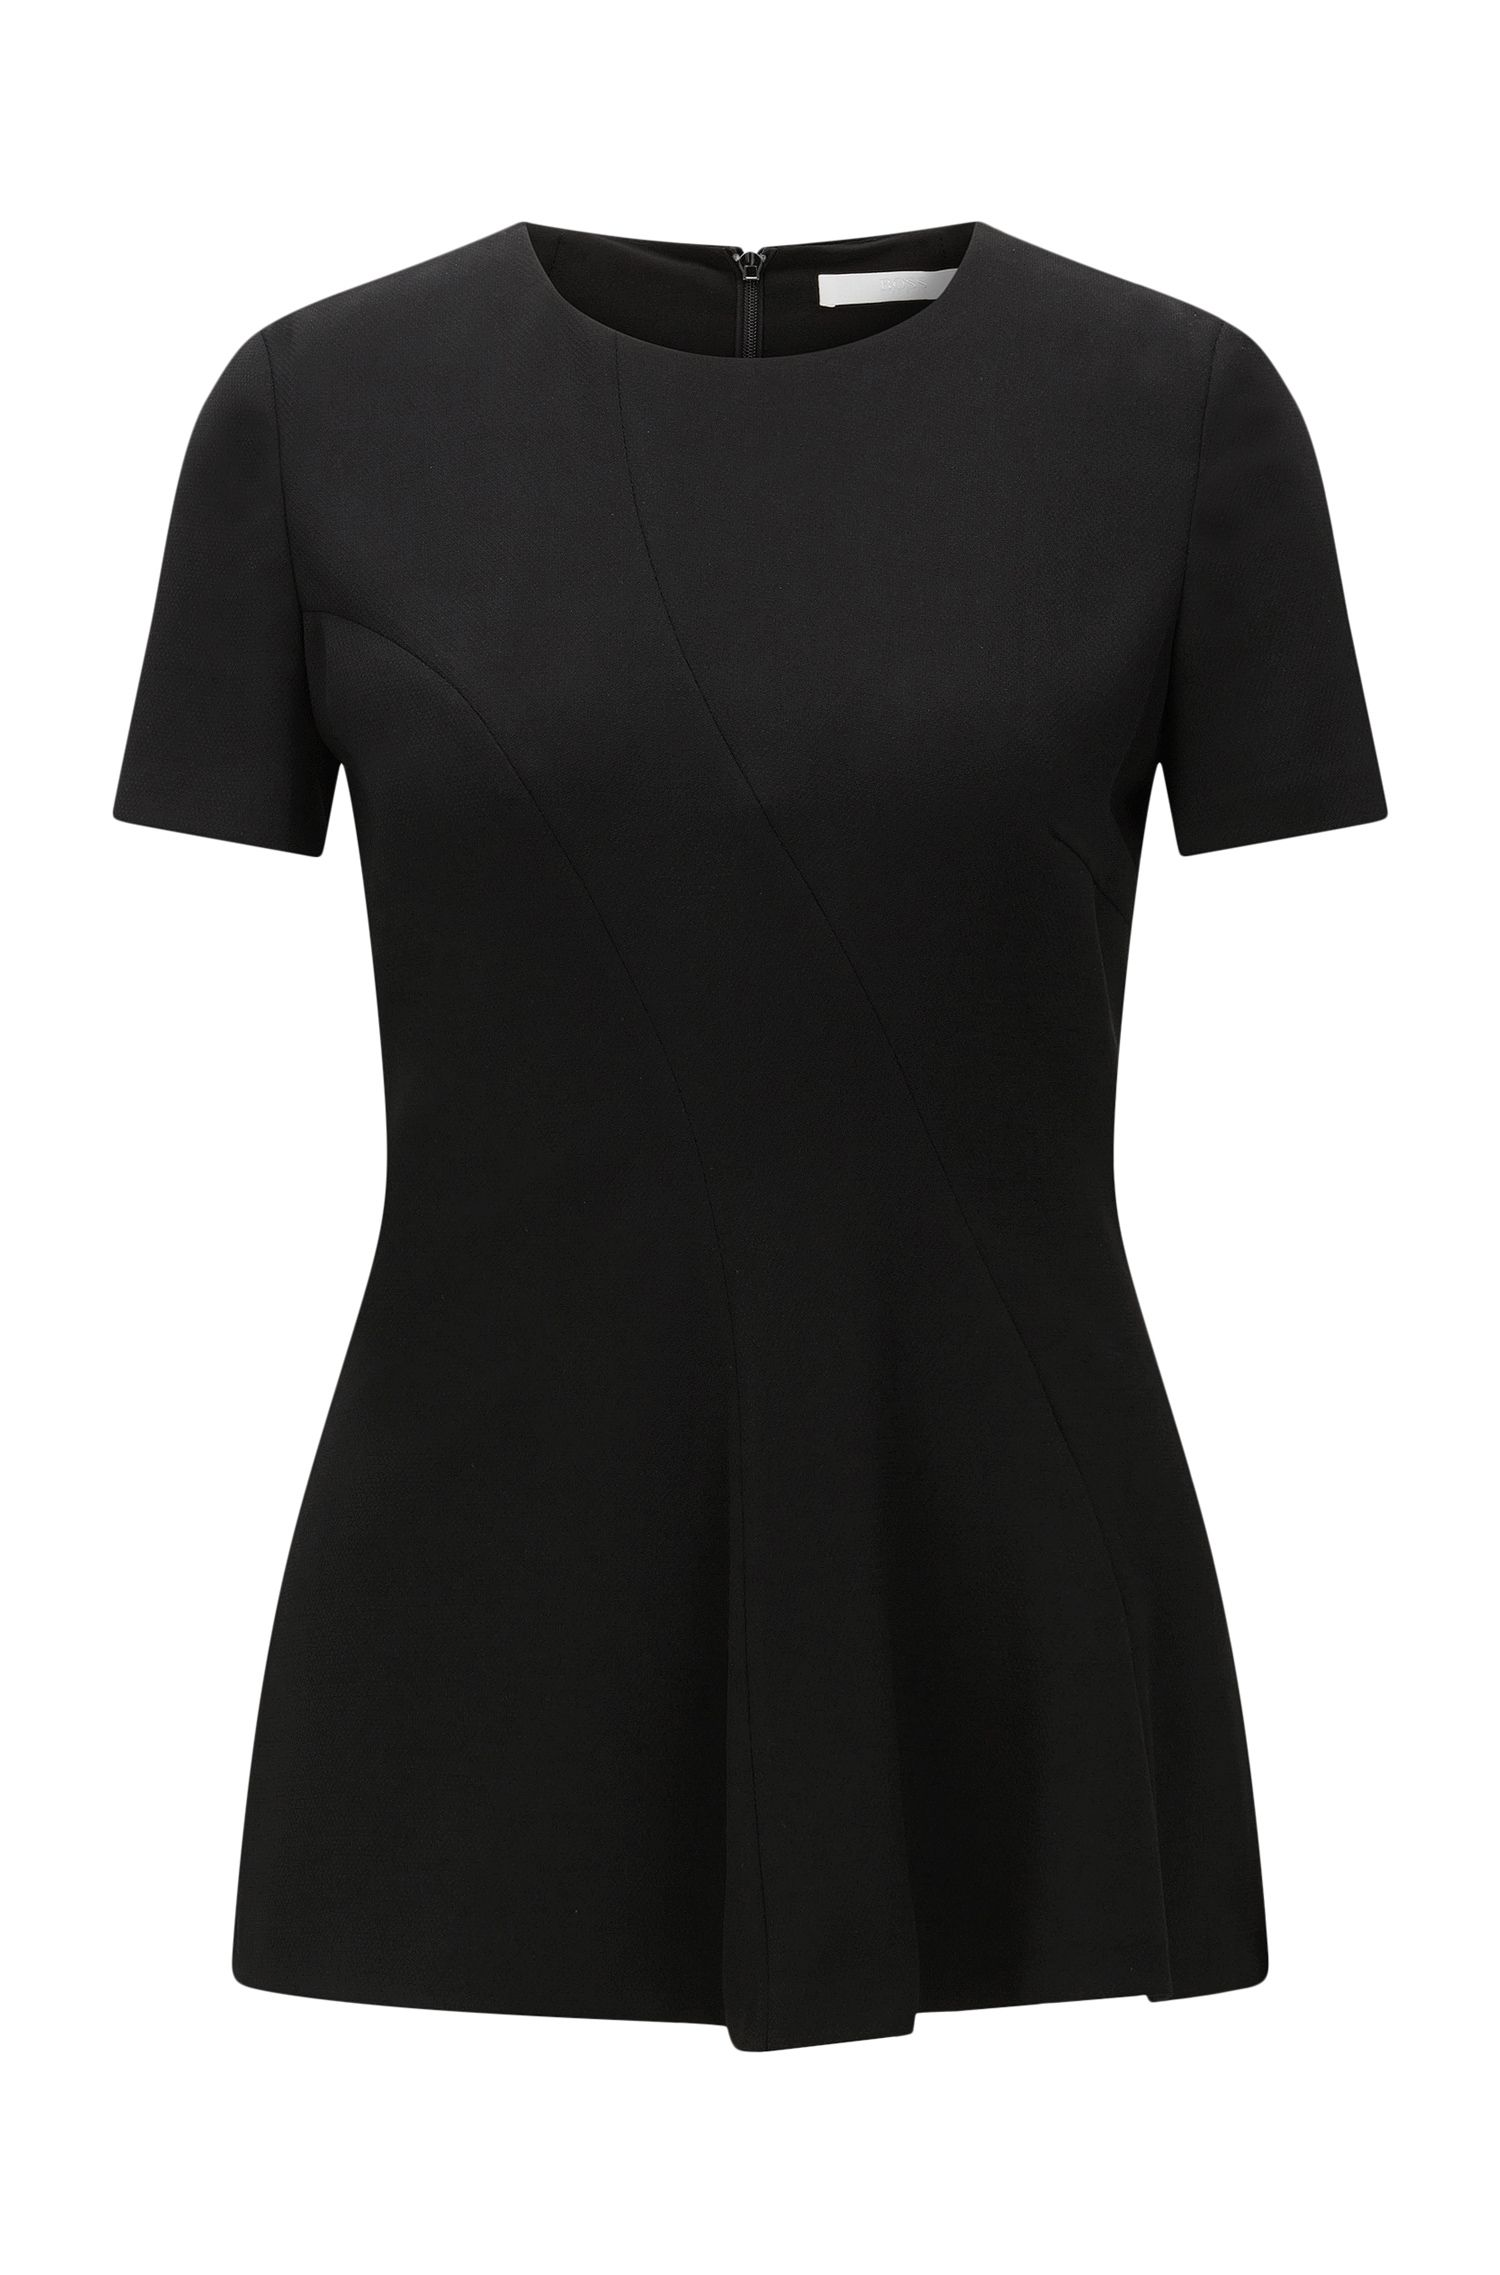 Short-sleeved top in textured fabric blend: 'Illerry1'